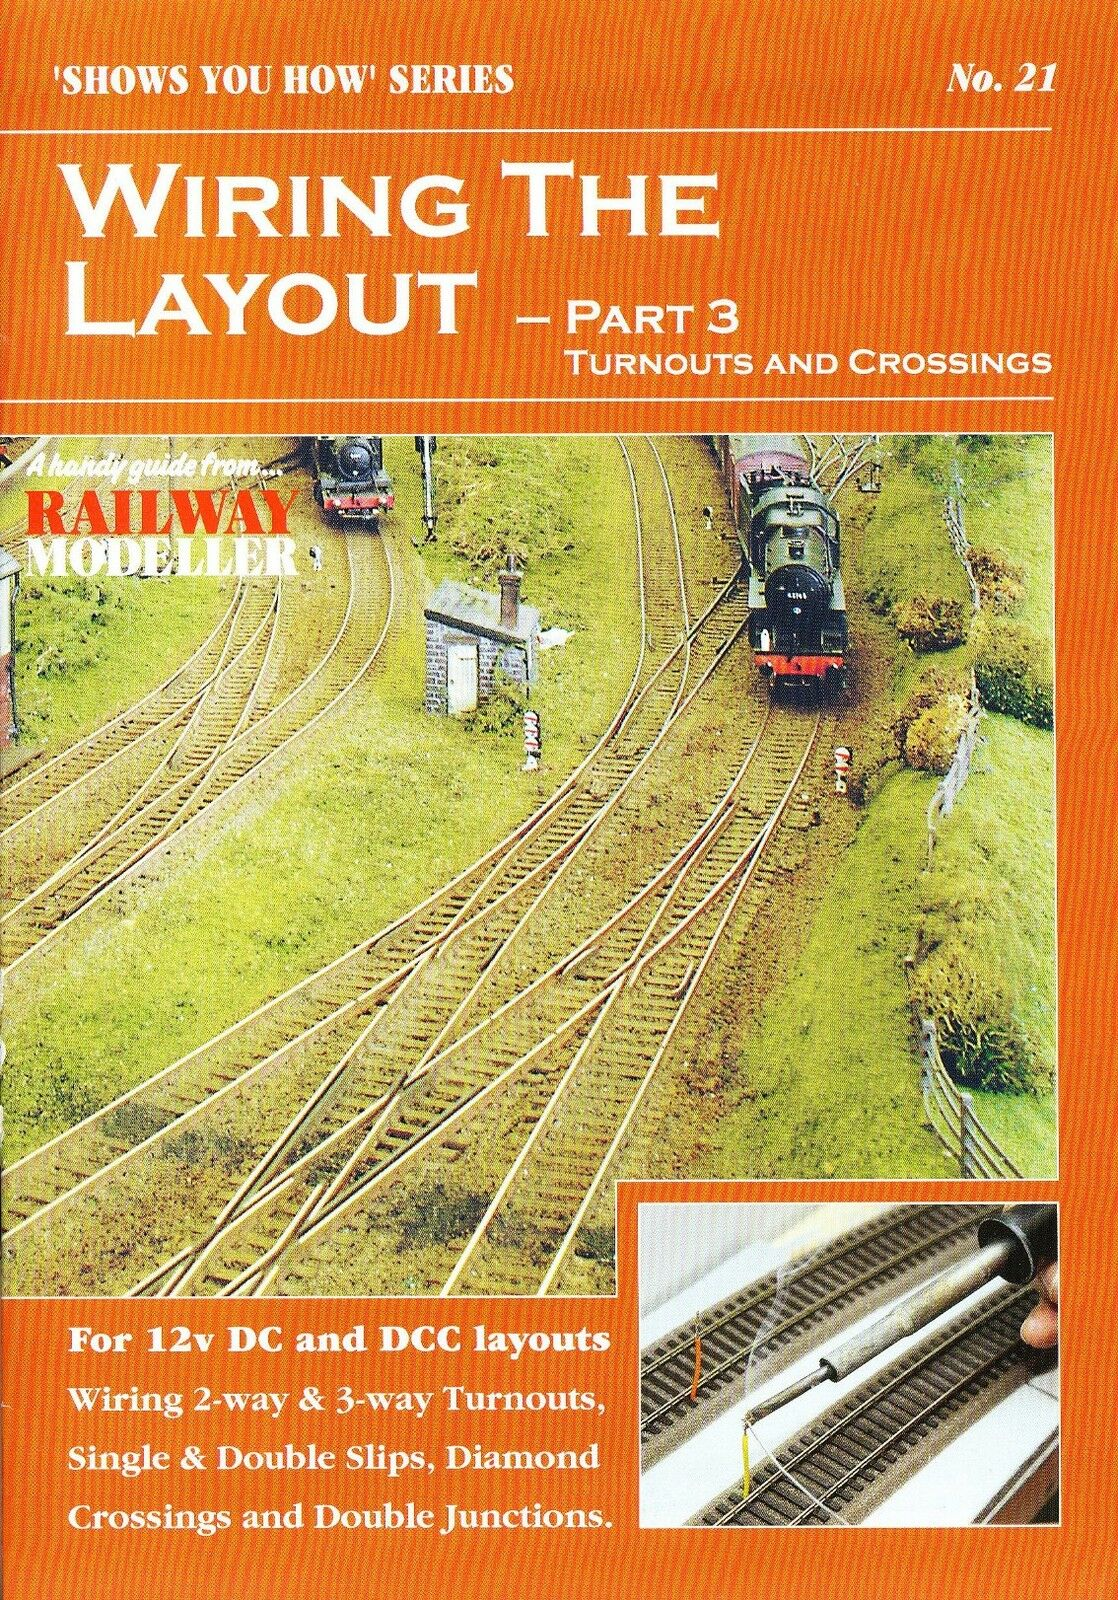 Peco Syh 21 The Railway Modeller Book Wiring Layout Part 3 16 Pg Model Railroad Track Norton Secured Powered By Verisign